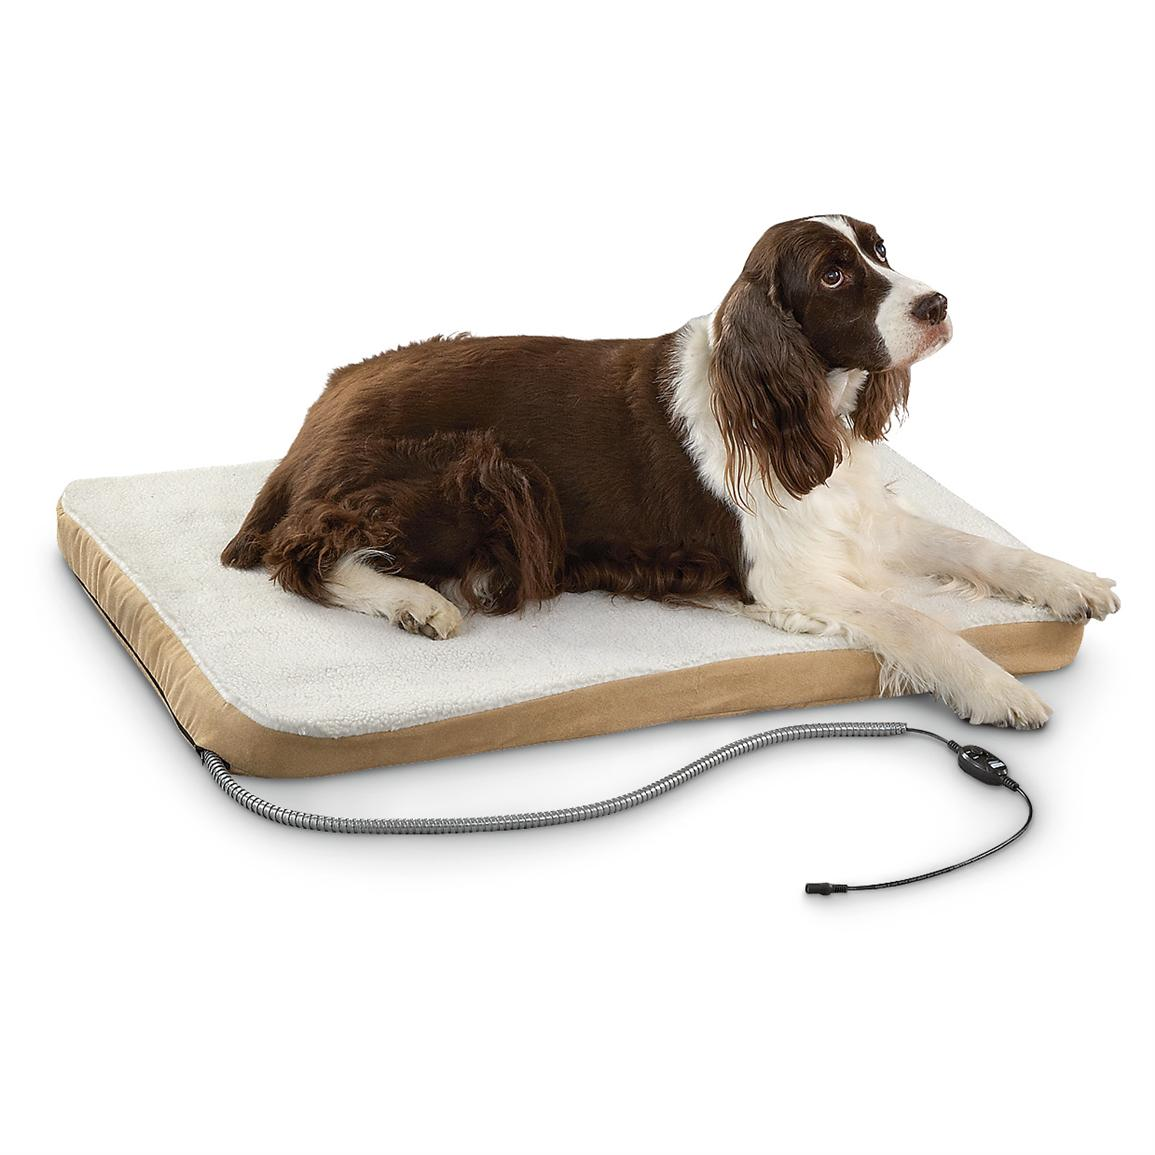 Comfort Ease 174 Large Heated Pet Bed 208873 Kennels